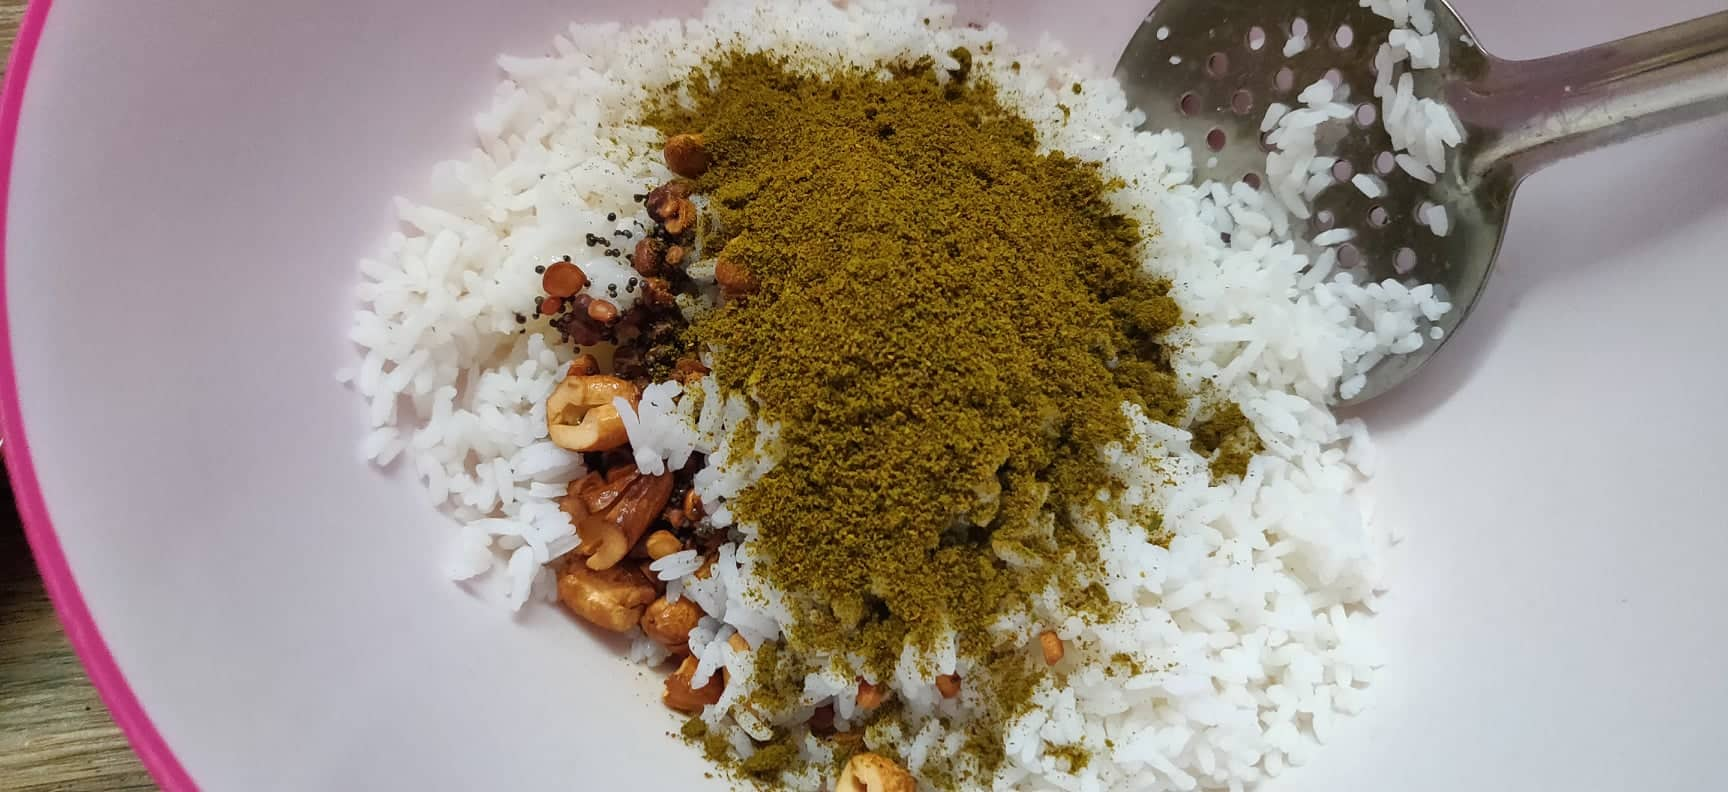 curry_leaves_rice - 83327298_484466995817629_3597196528155885568_n